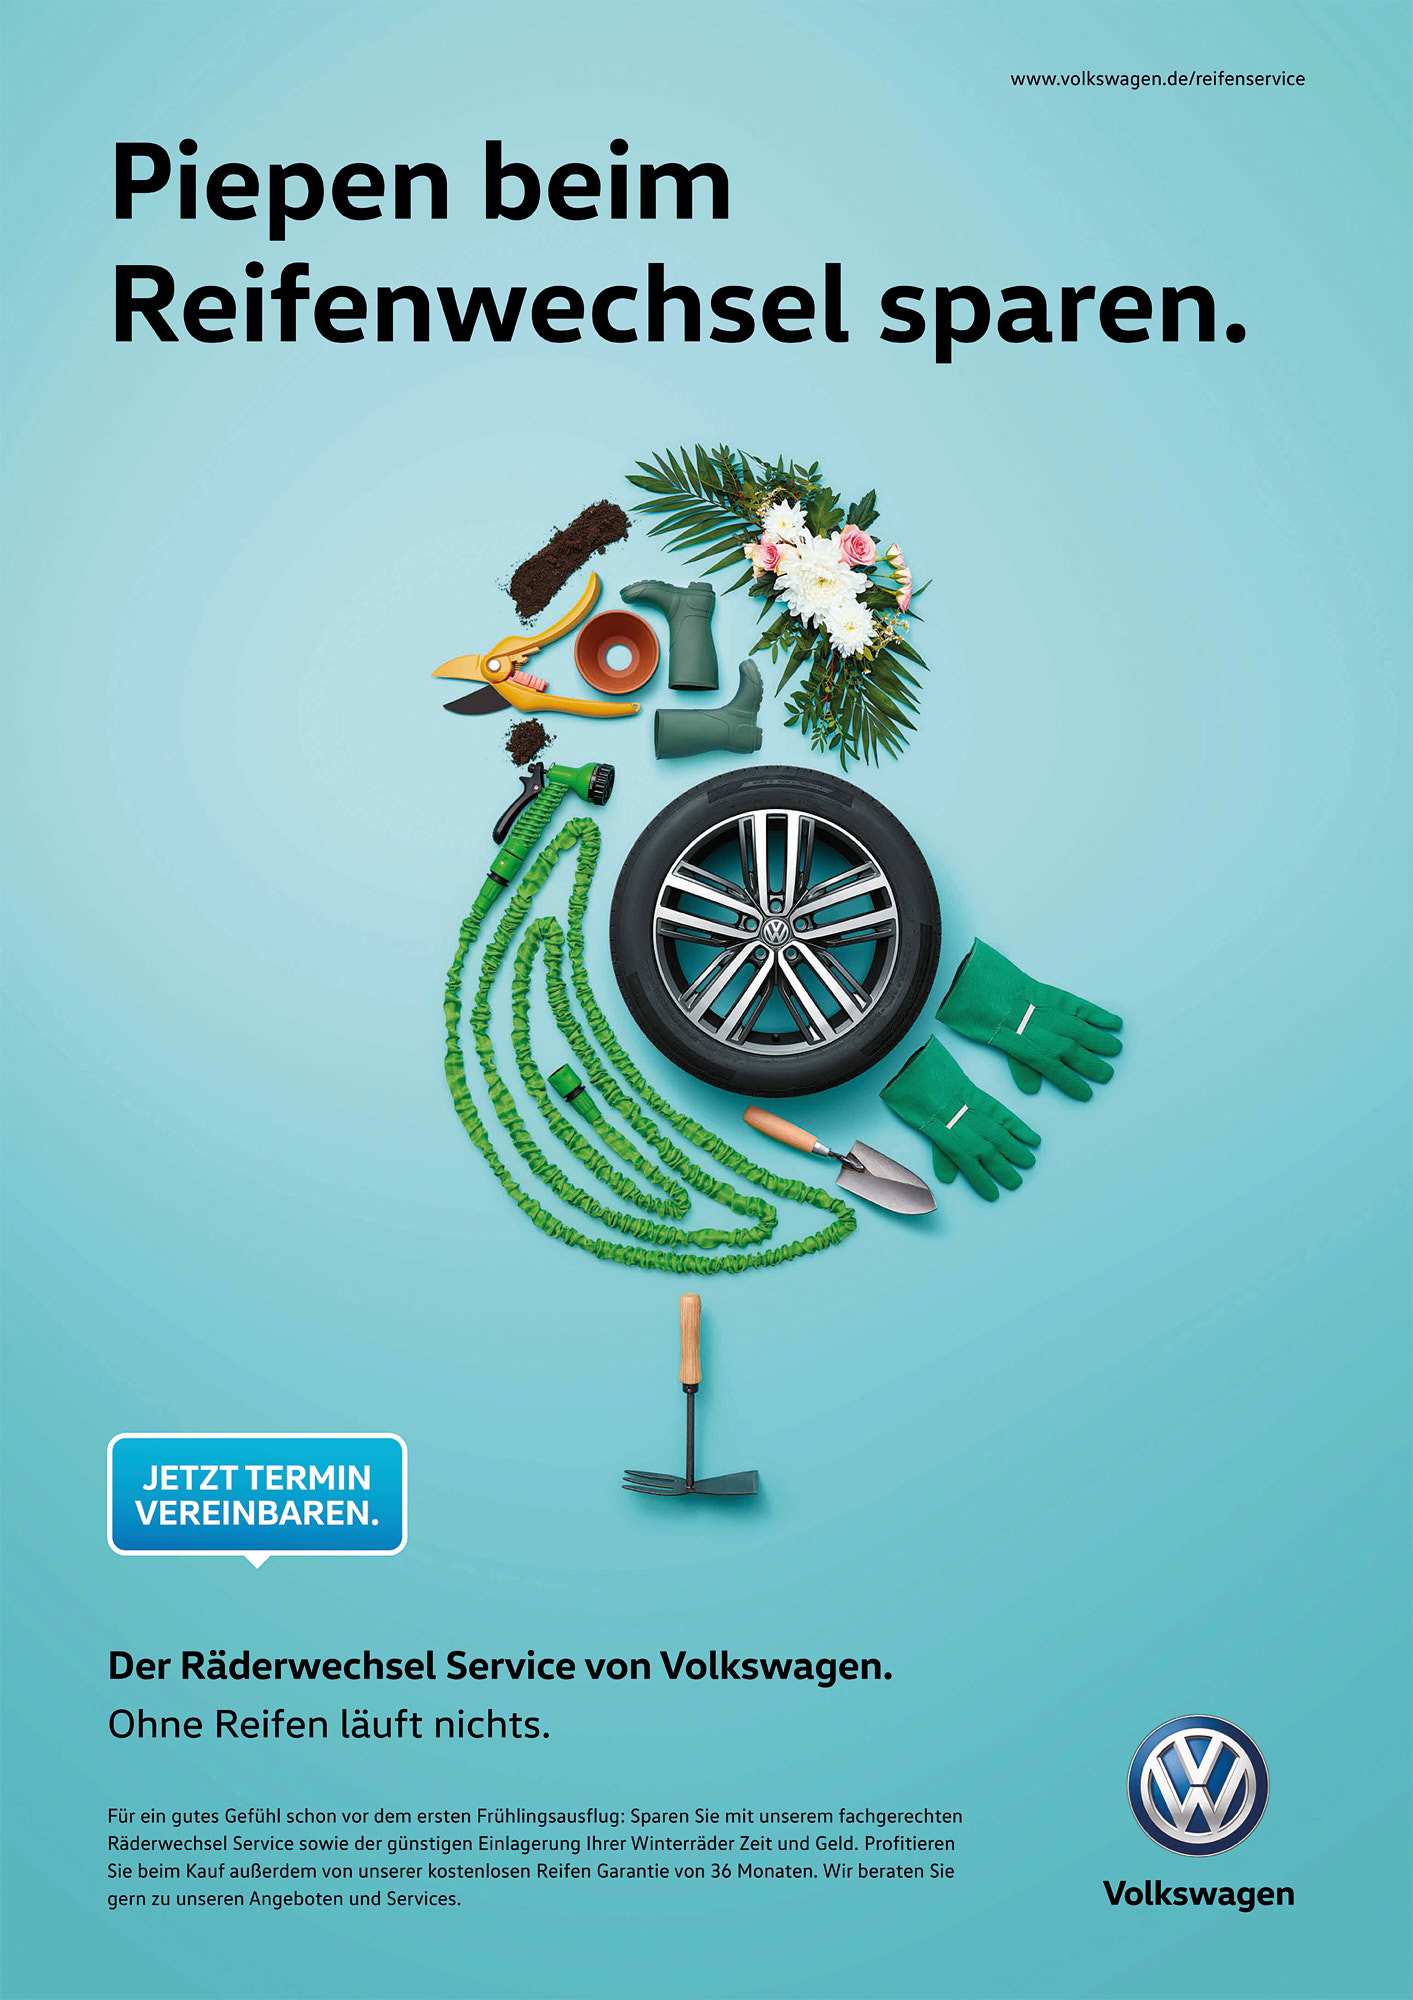 bernd-westphal-stillstars-vw-raeder-advertising-photography-001